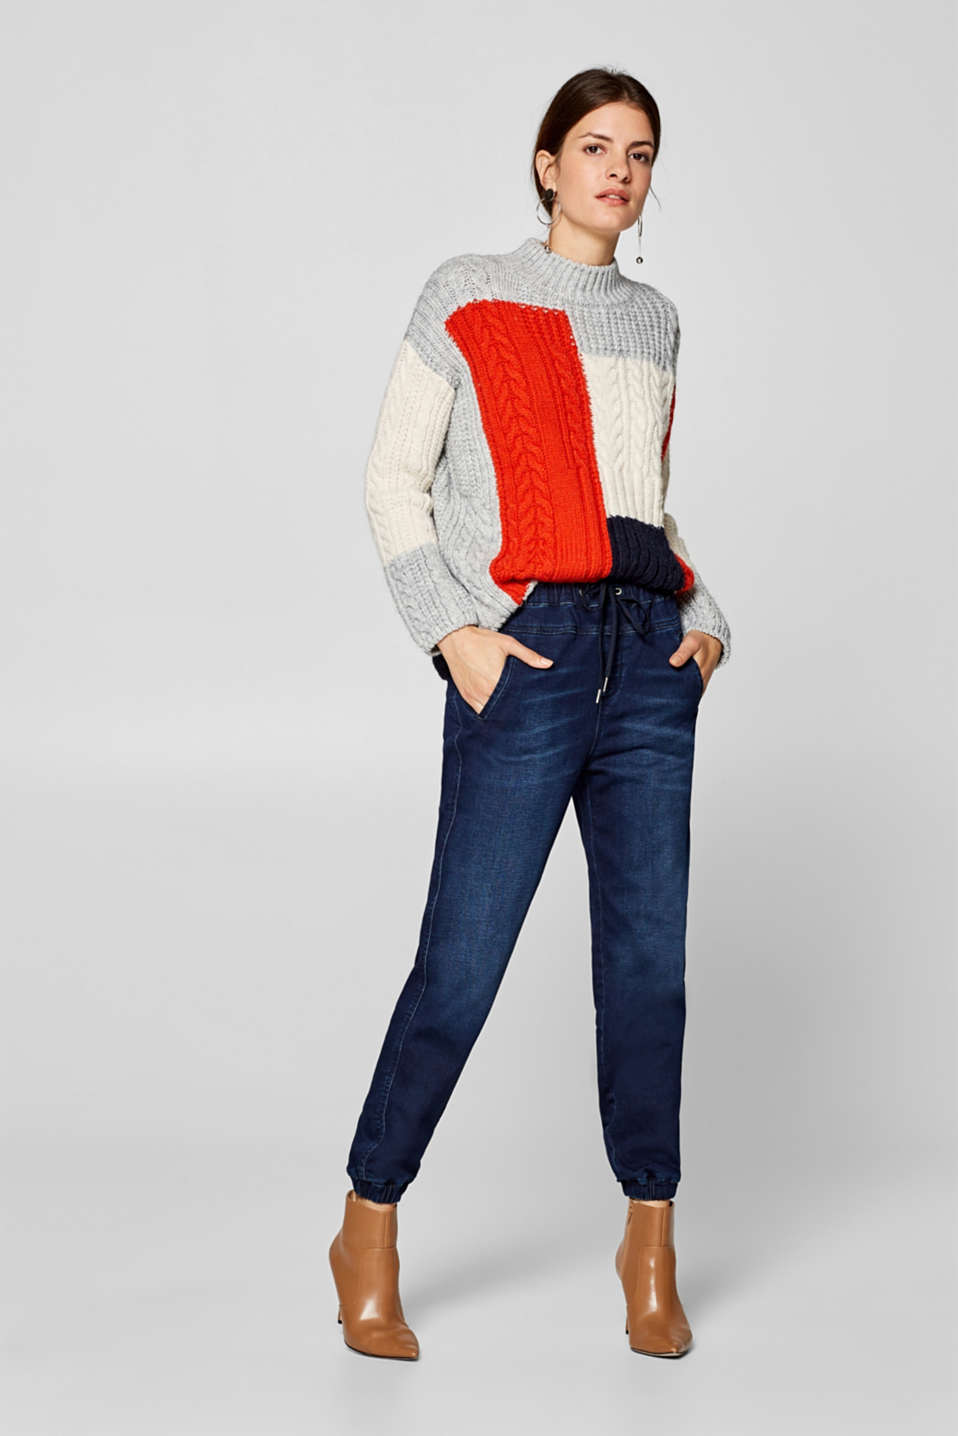 Esprit - Soft stretch jeans in a casual tracksuit bottoms style